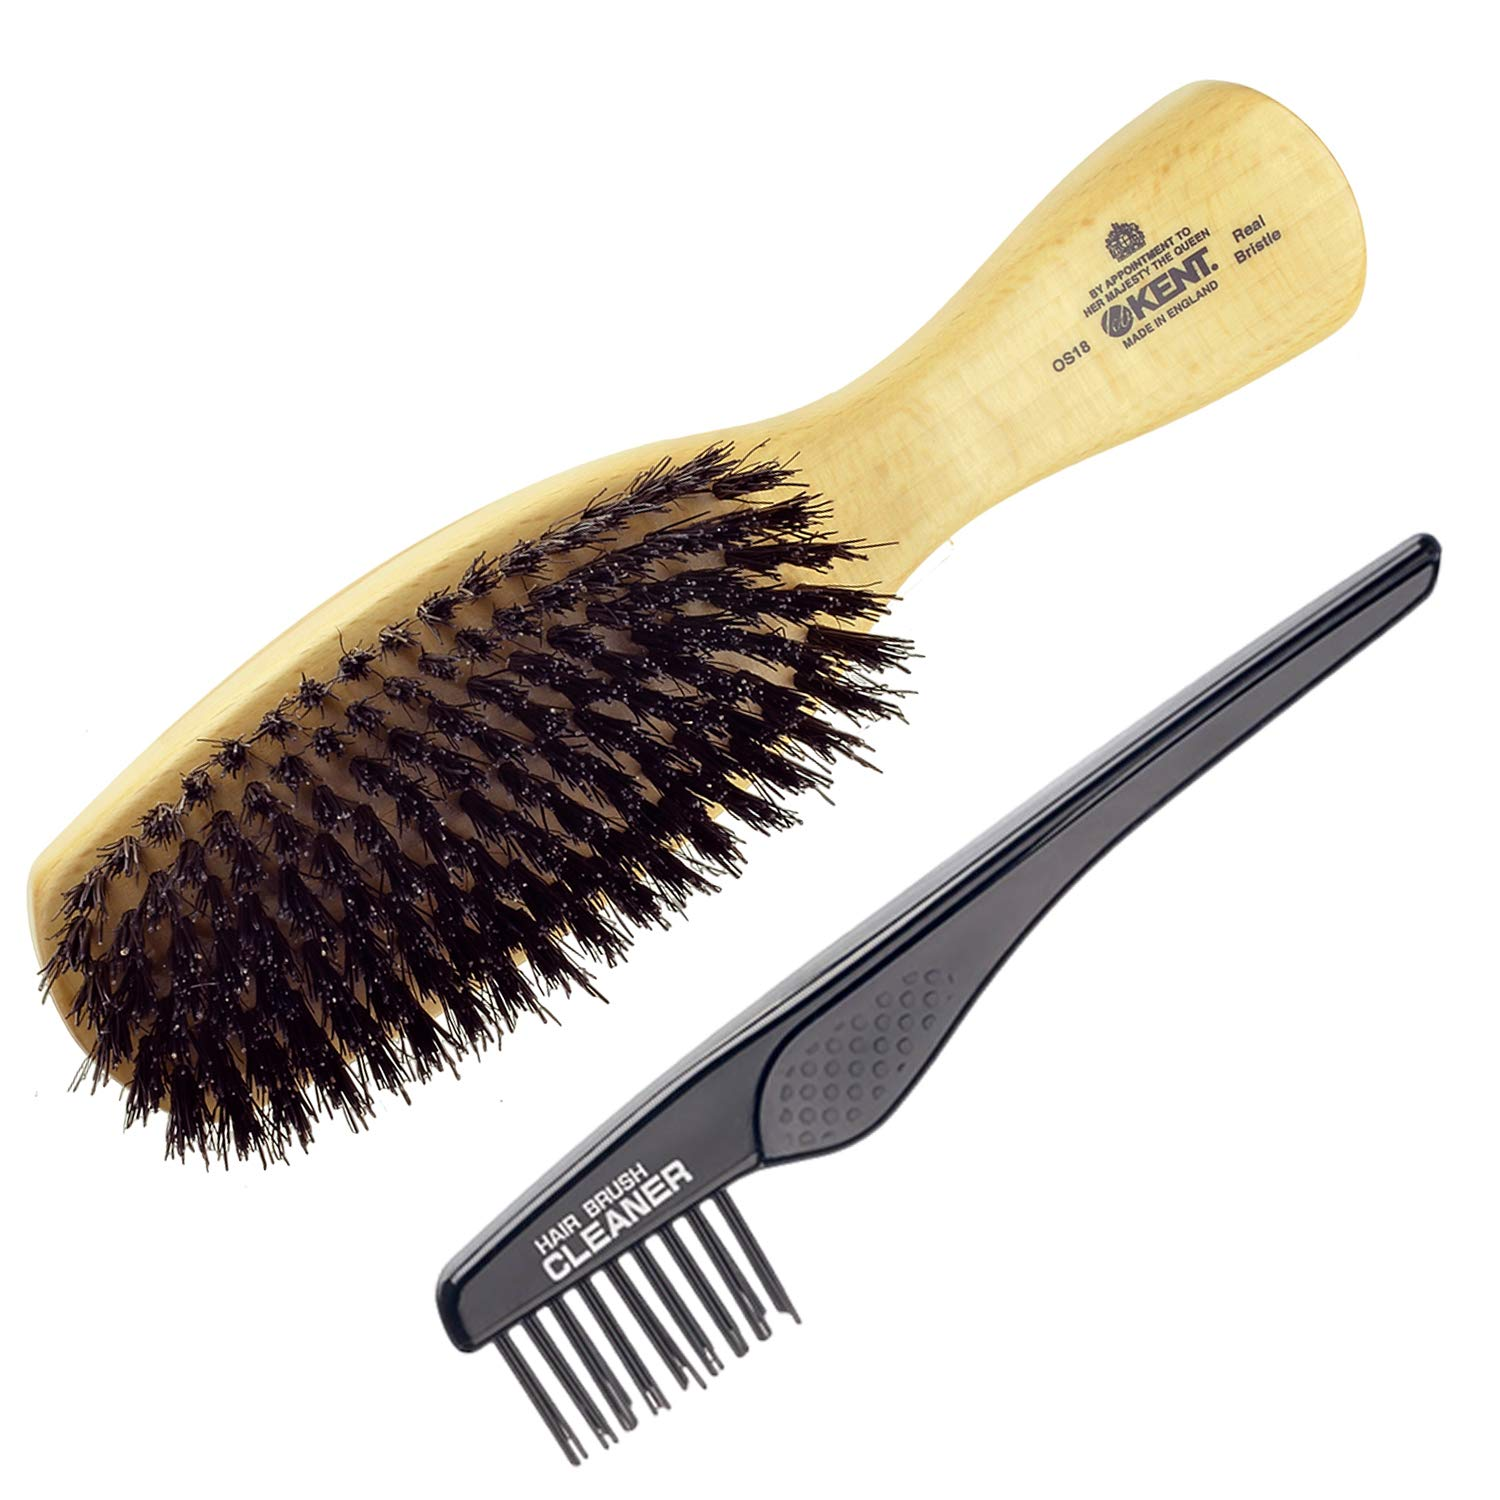 Kent Finest Men's OS18 Rectangular Club Satinwood Pure Black Bristle Gentleman's Hair Brush + Kent LPC2 Hair Brush Cleaner - Best Hair Care Kit for Men, 360 Wave Brush (OS18+LPC2) by KENT (Image #1)